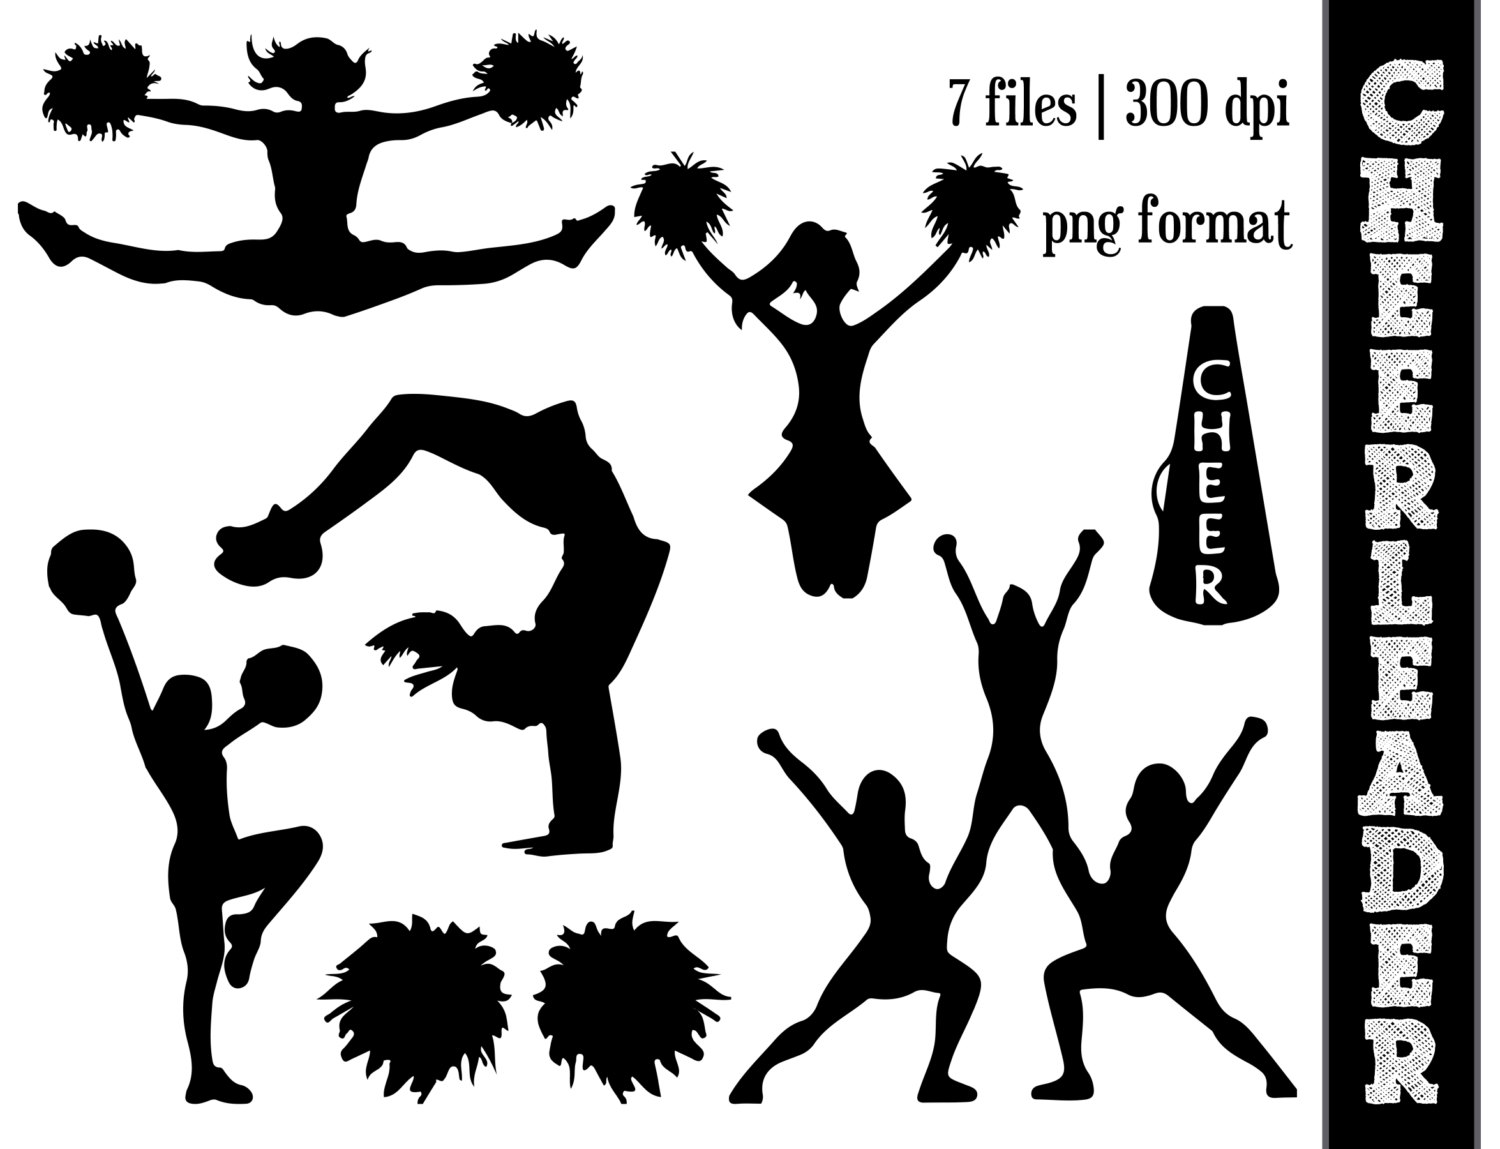 Cheerleader Silhouettes // Cheer Silhouette // Cheering Clipart // Athletic, Athlete Silhouettes // Pom Poms